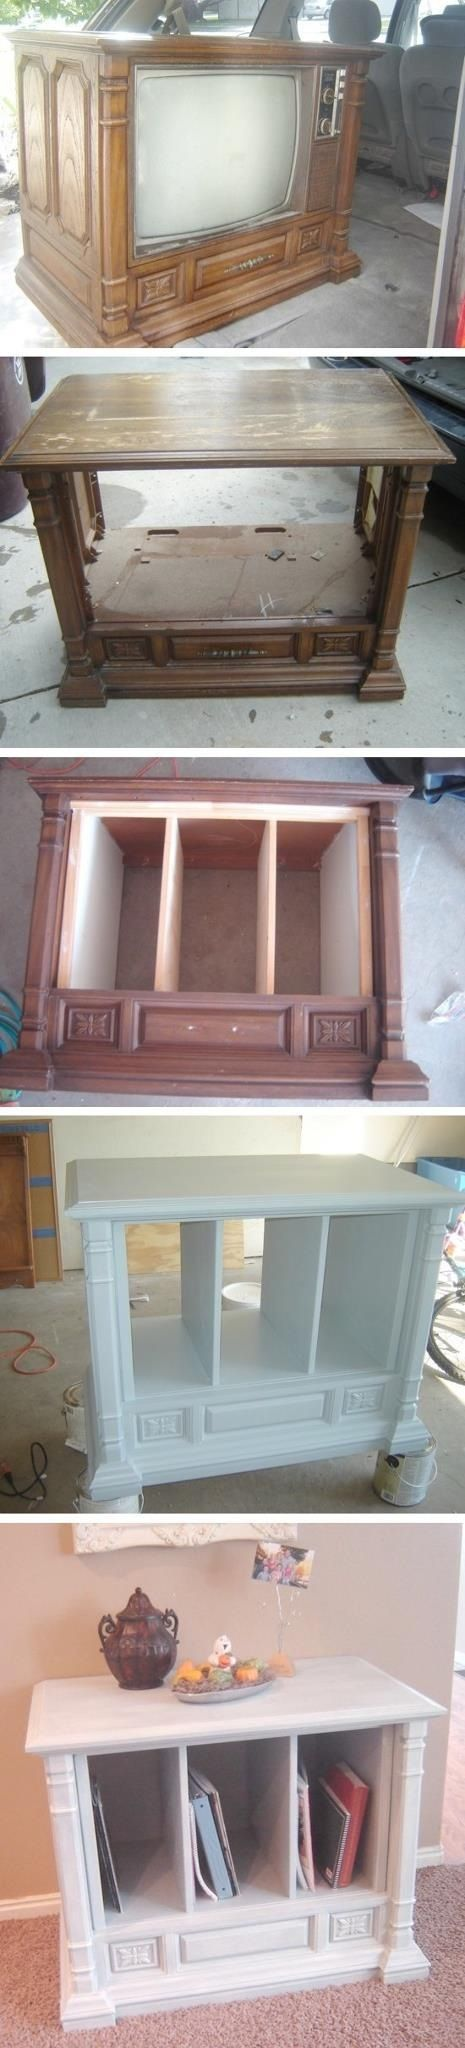 Love This Repurposing Idea For An Old Tv Console. I Am In The Process Of